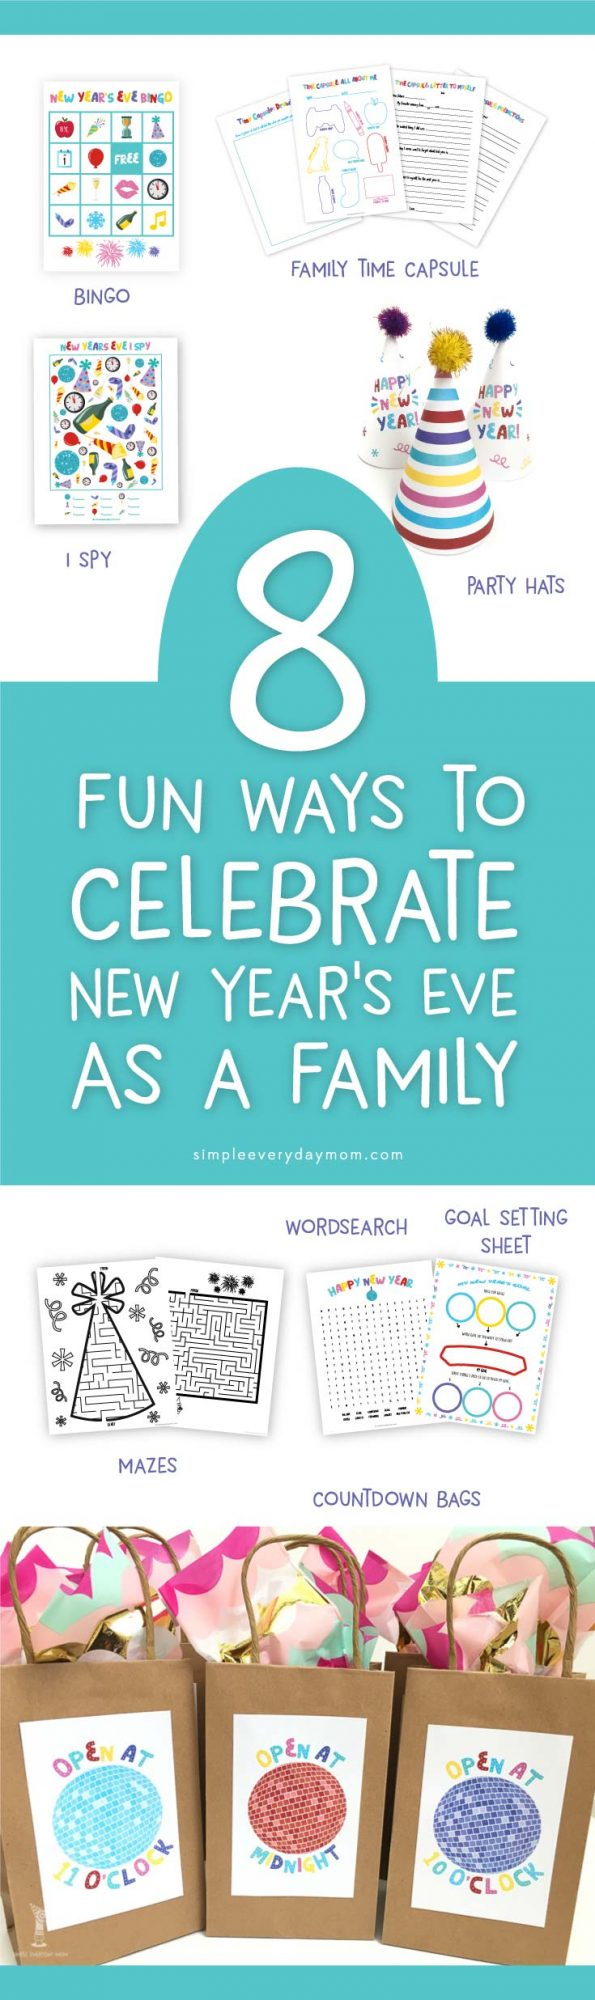 New Years Eve Ideas For Families | Have an awesome New Years Eve party with your kids with these NYE activities. There's bingo, ispy, a family time capsule, mazes, a goal setting sheet, countdown bag labels and party hats!